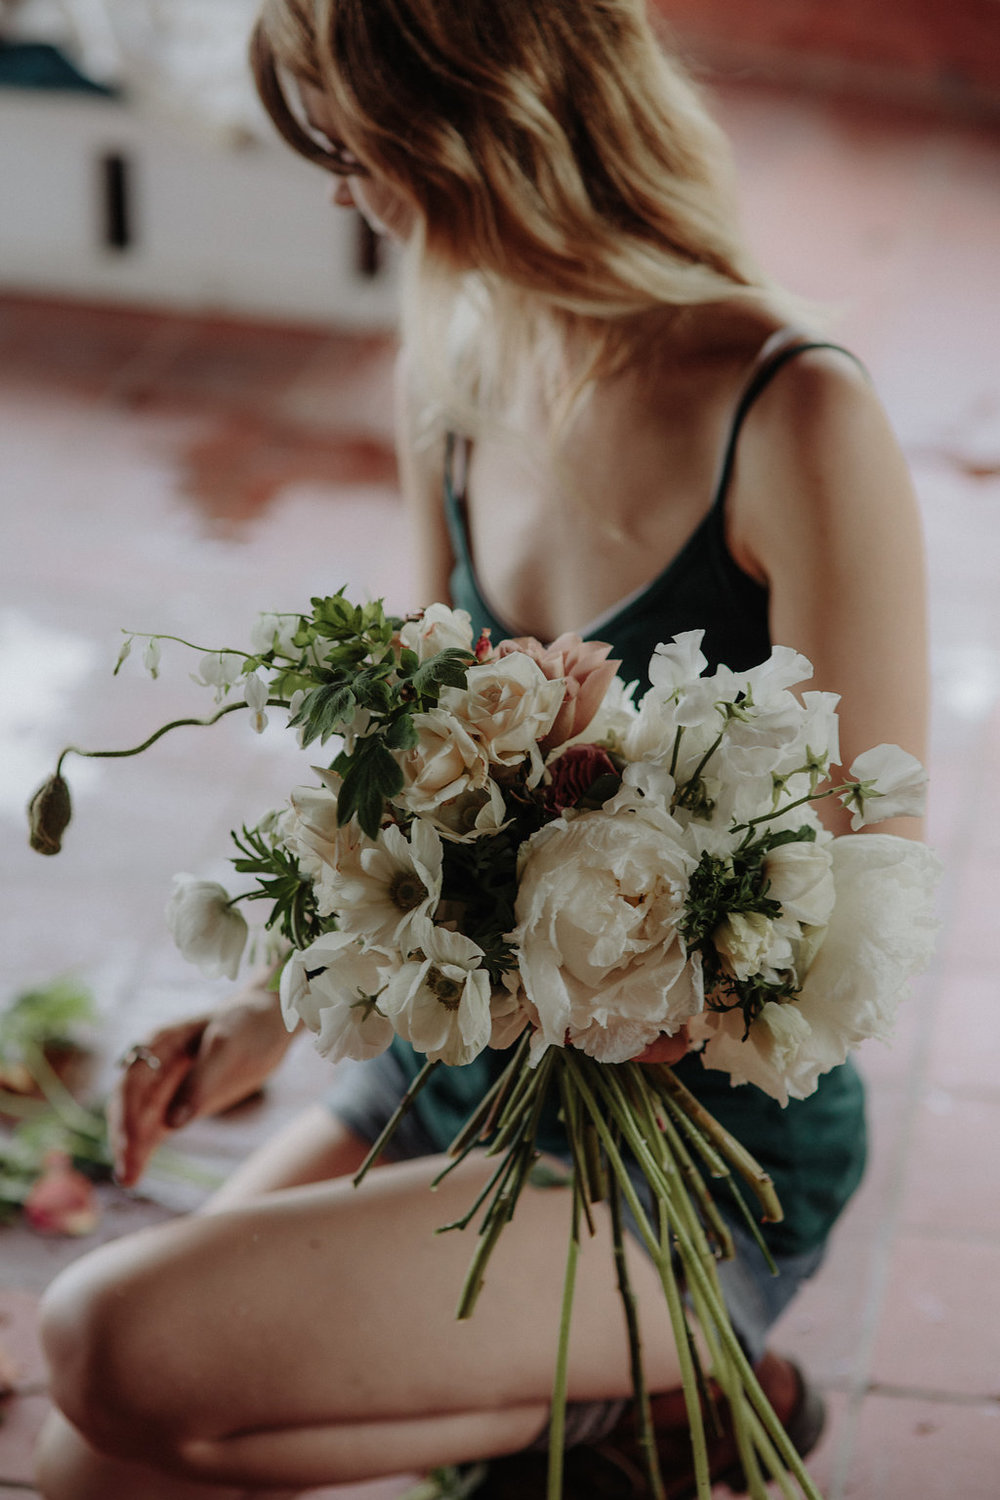 Floral design process by Nectar & Root | Wedding floral design services in Burlington, Vermont (VT) | Cream bridal bouquet of peonies, garden roses, and poppies